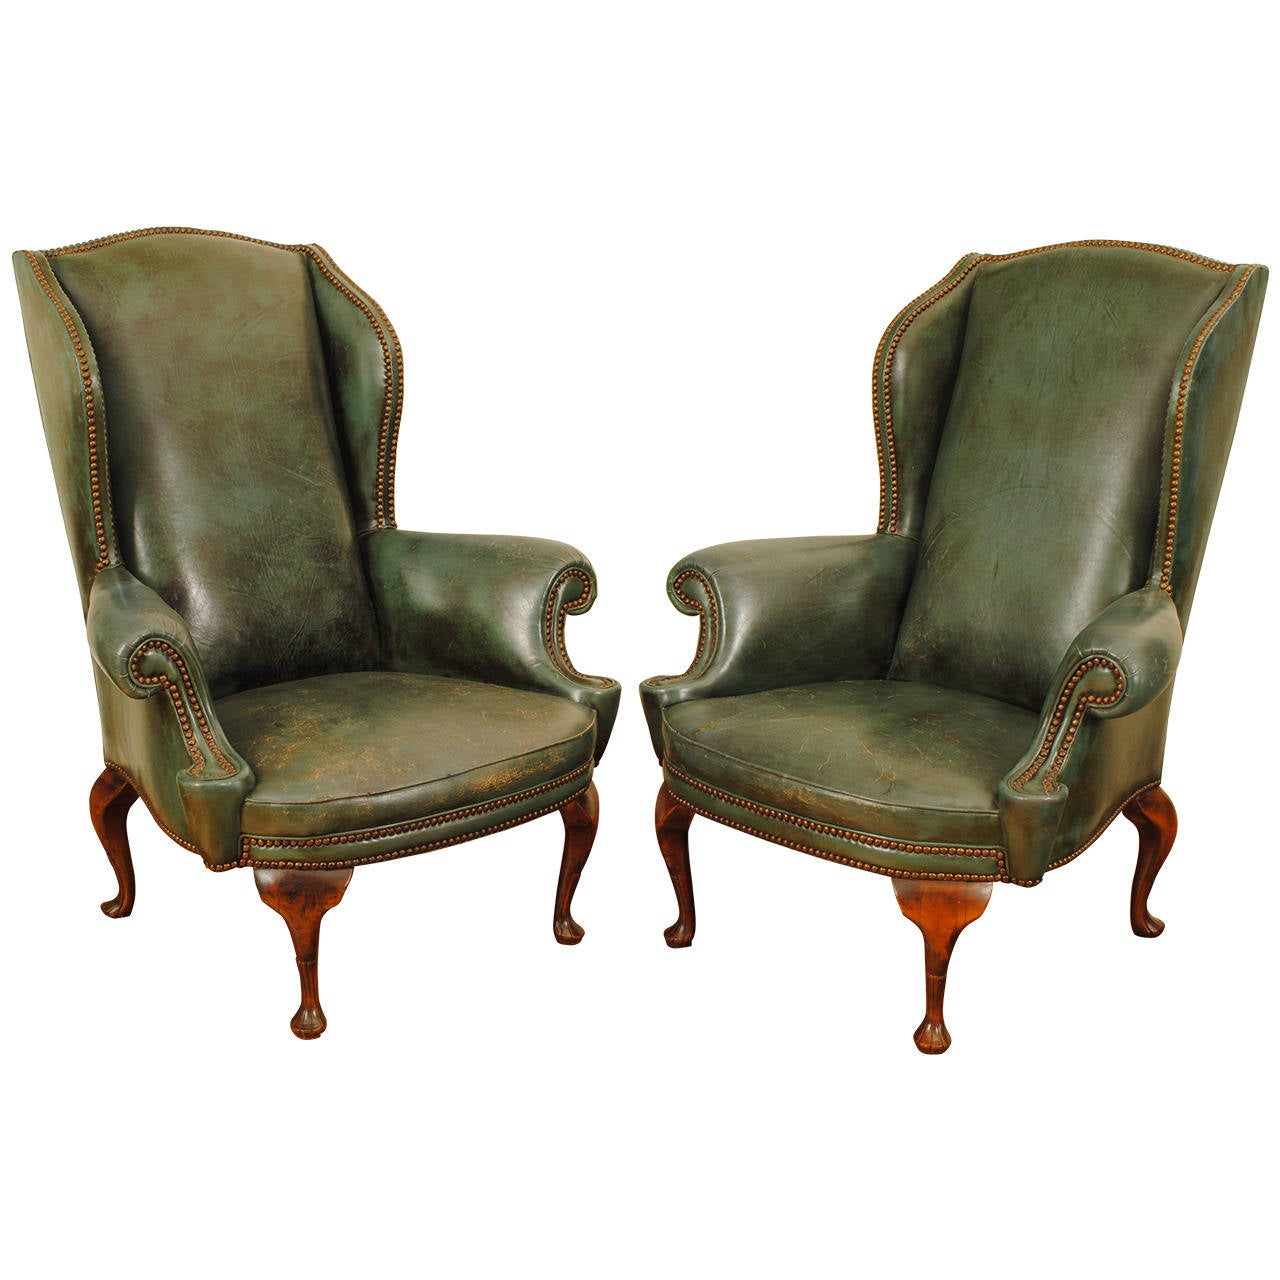 ... Queen Anne Style Walnut and Leather Upholstered Wing Chairs at 1stdibs